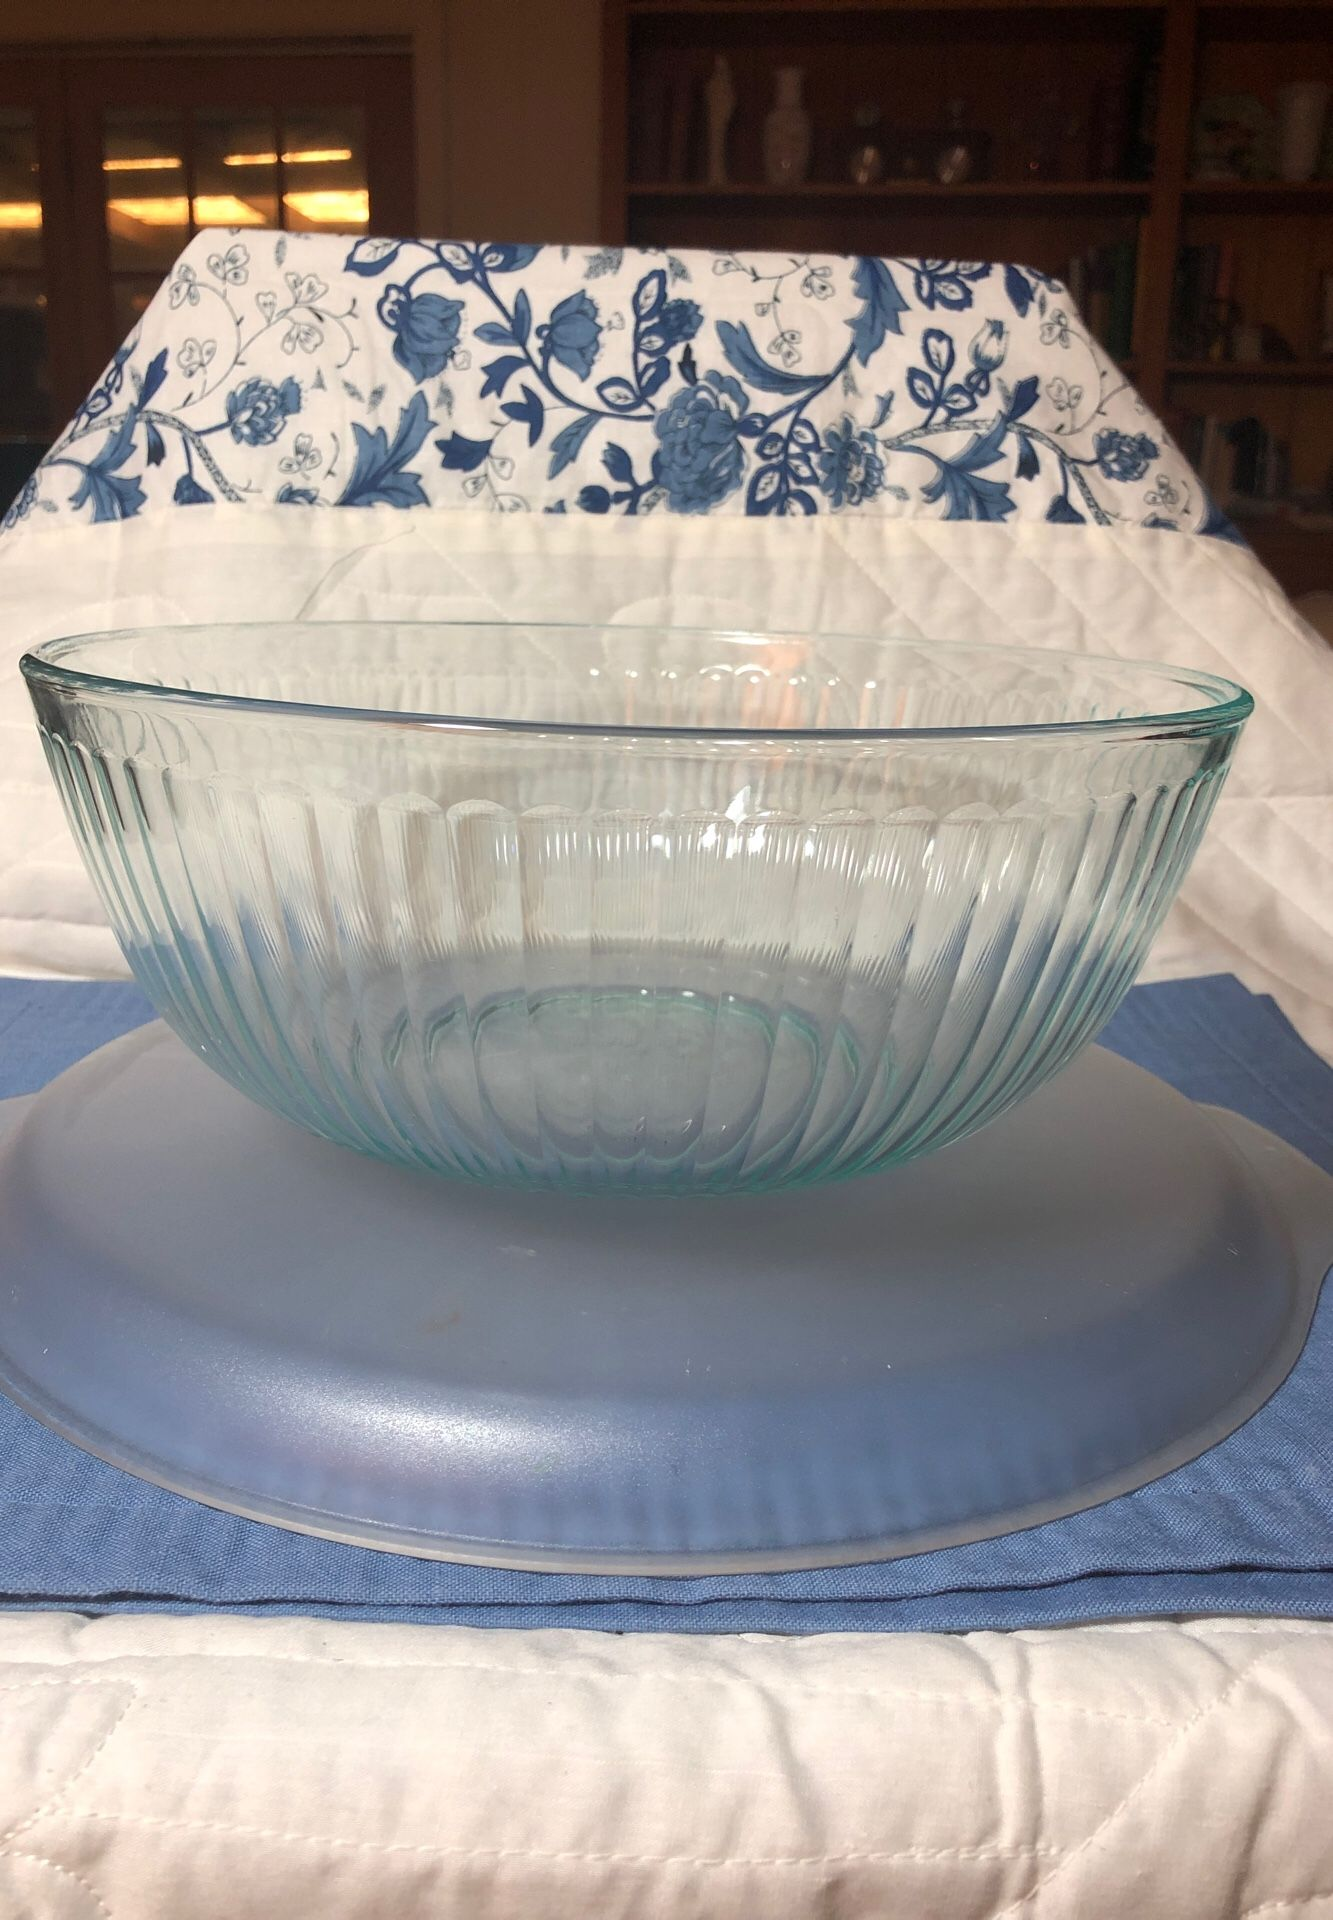 Pyrex 4.5 qt turquoise tinted mixing bowl